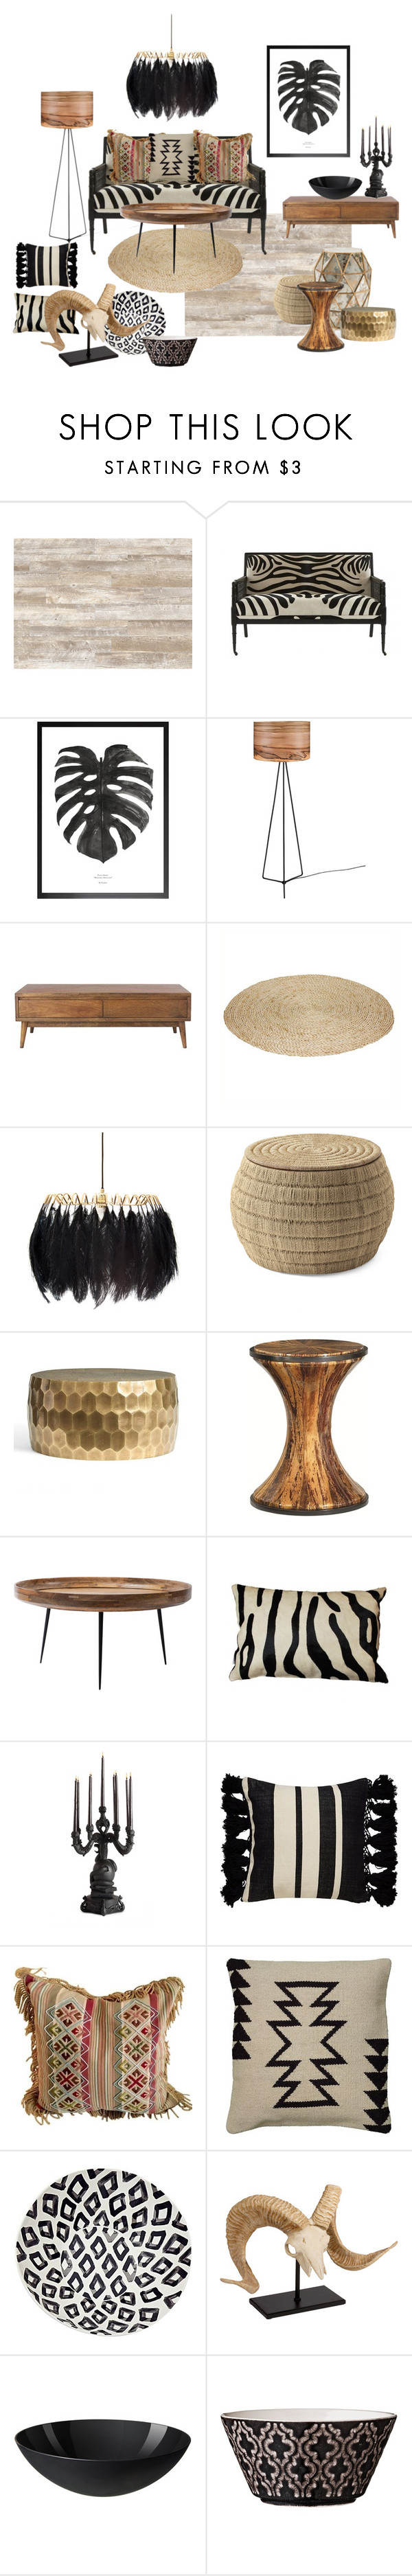 """Tribal living room"" by mscrn-info on Polyvore featuring interior, interiors, interior design, дом, home decor, interior decorating, Jayson Home, Home Decorators Collection, Mineheart и Serena & Lily"